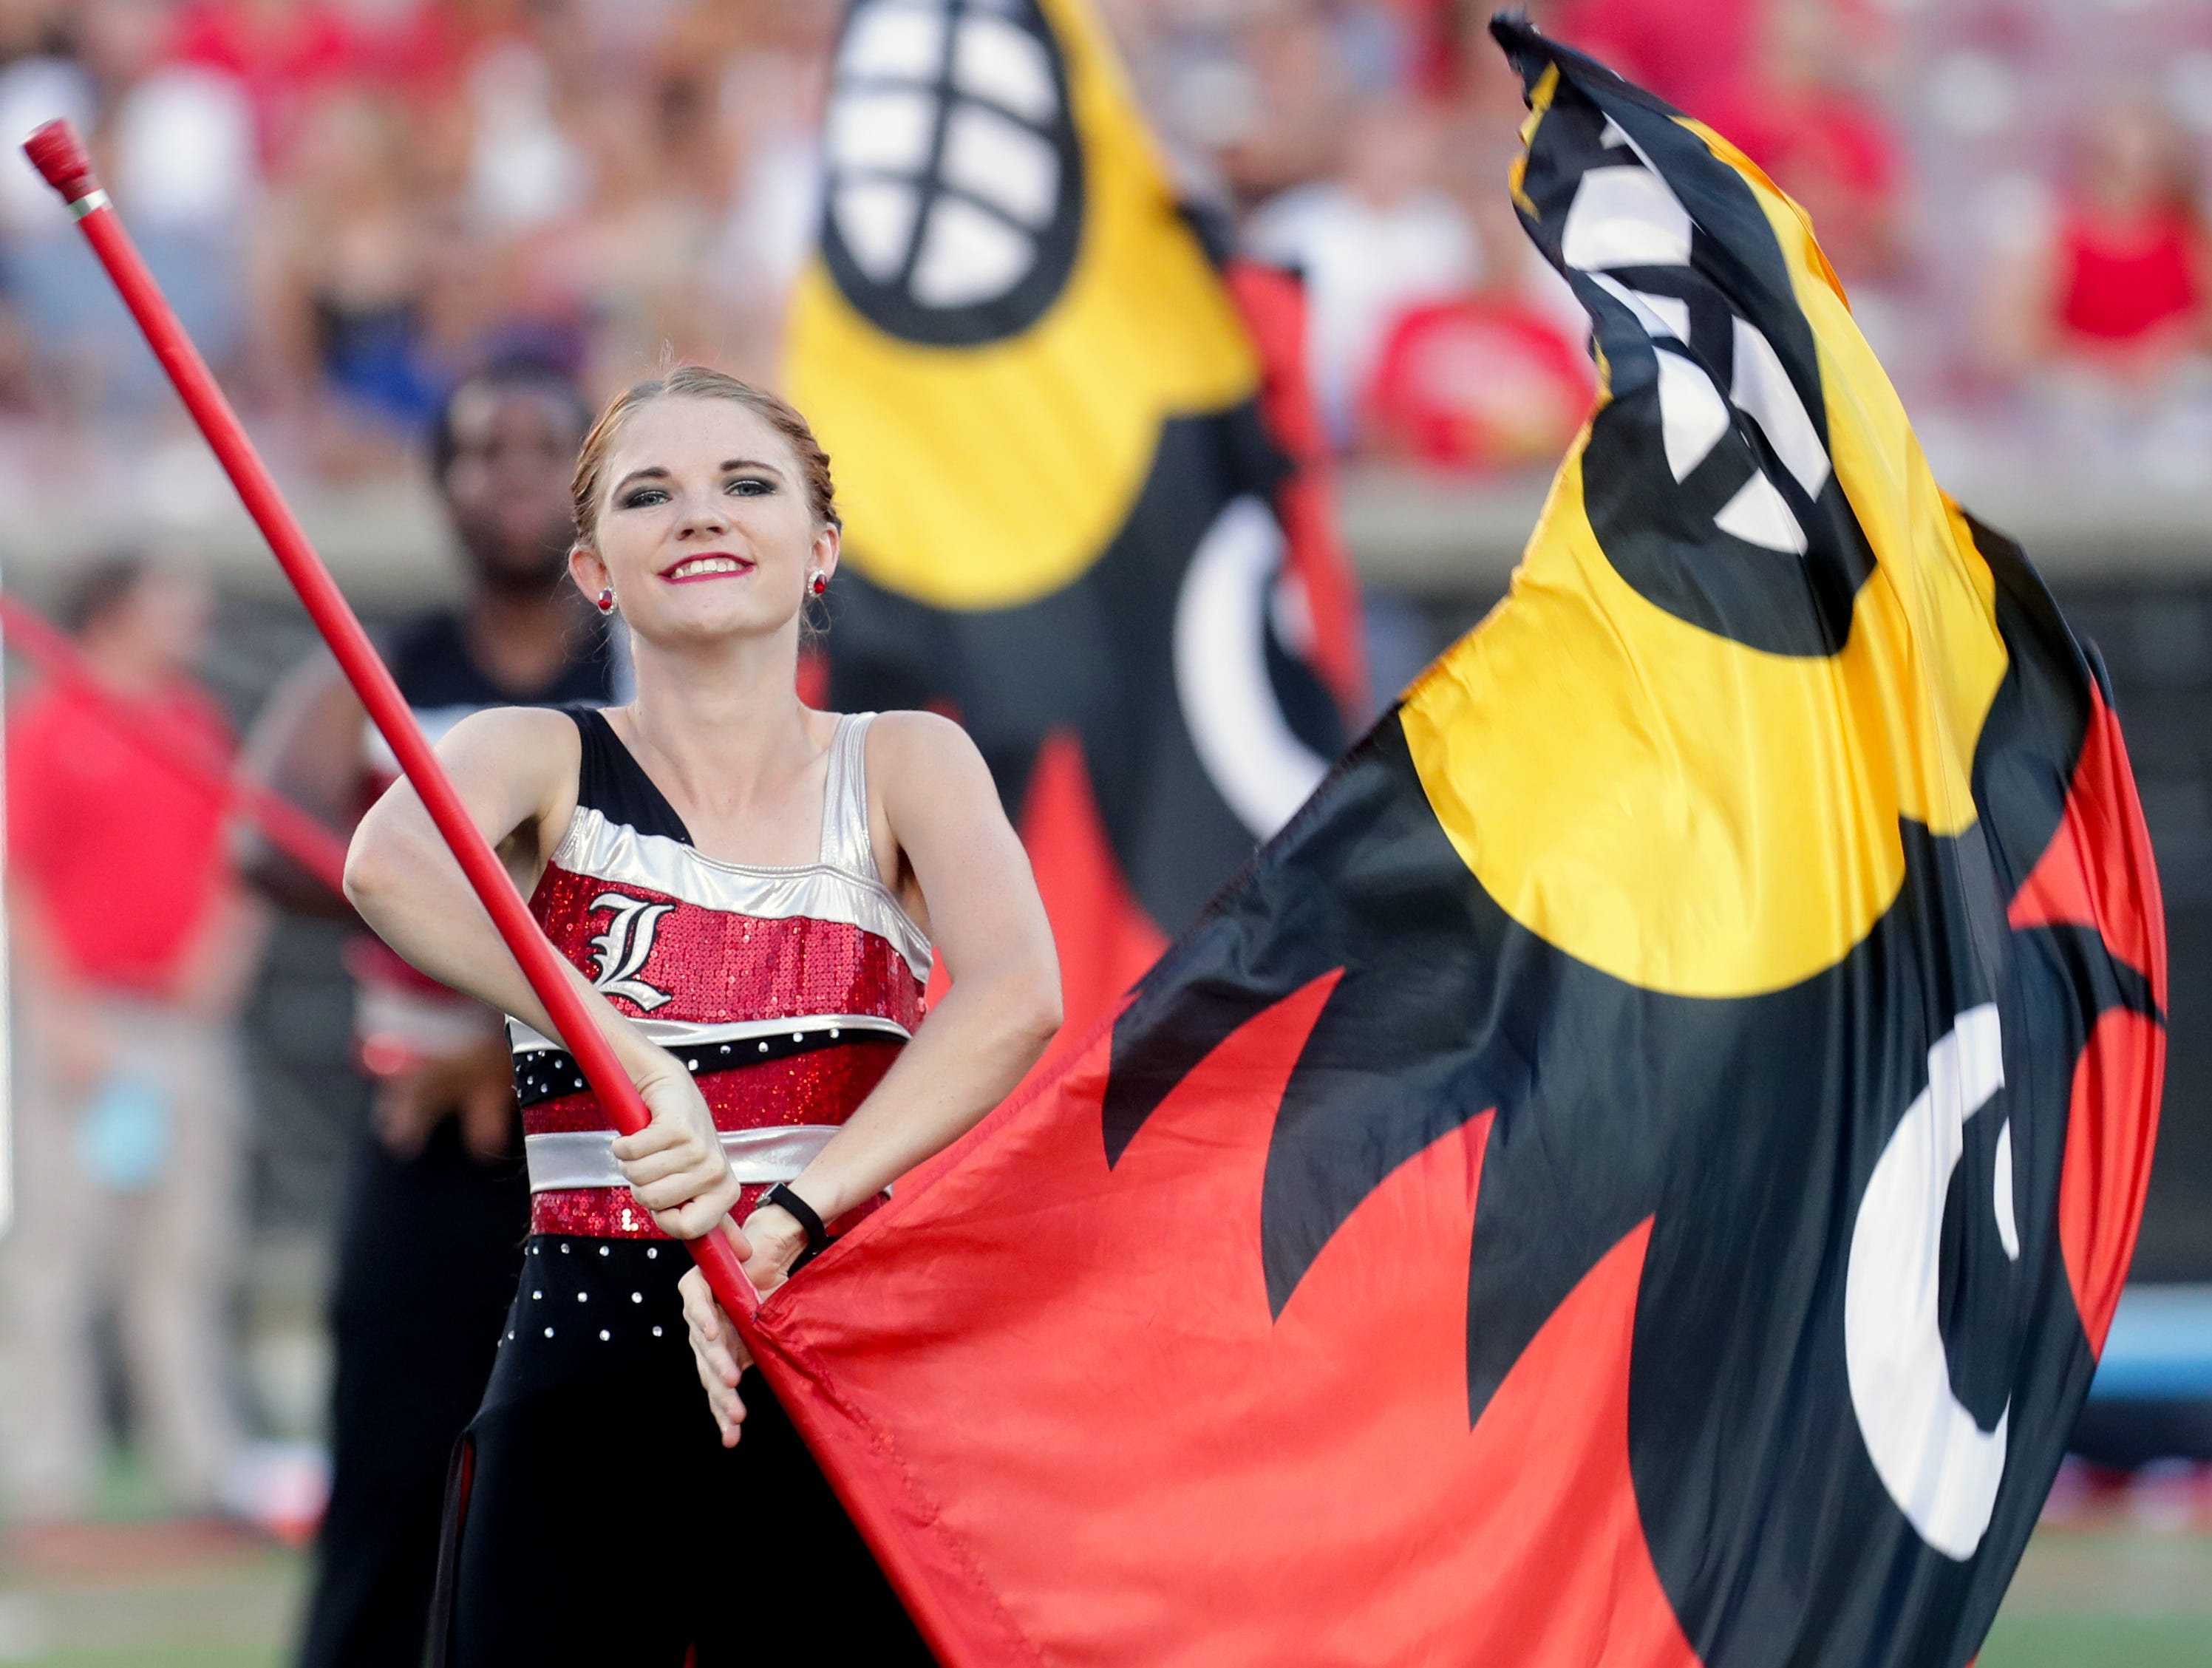 The  Louisville Marching Band Color Guard performs before the game against WKU. 